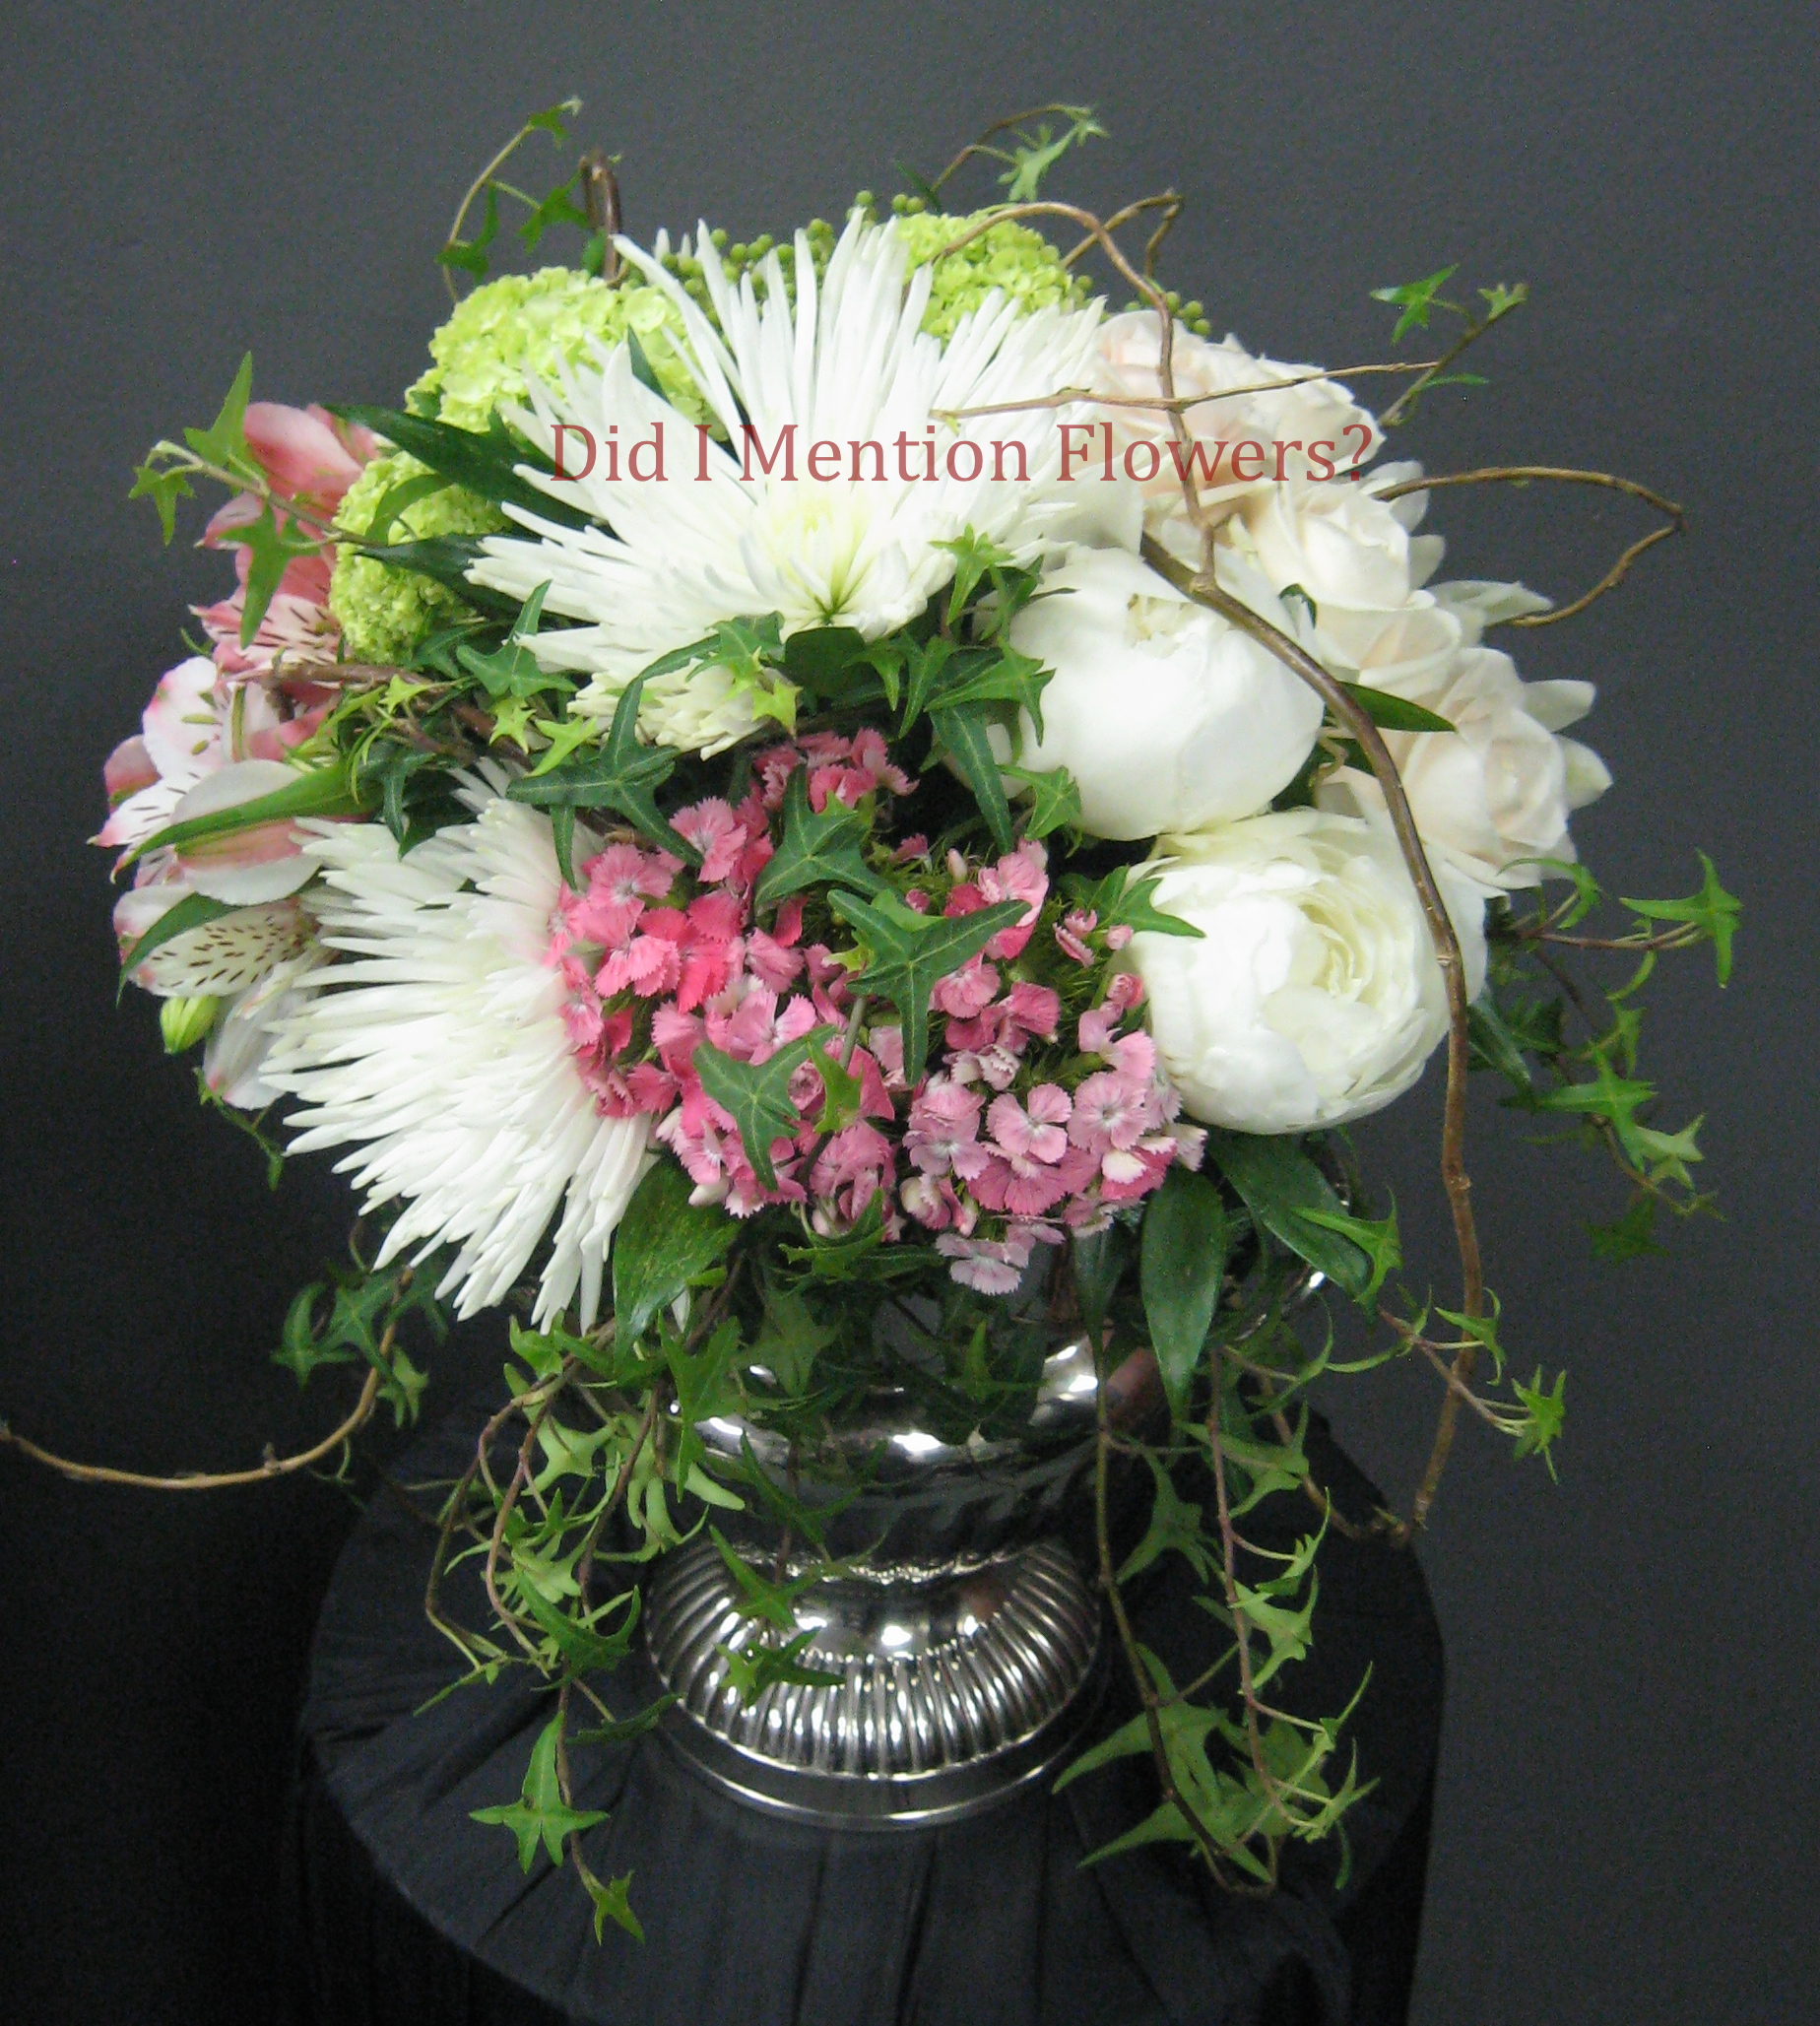 1 - Arrangement in an Urn